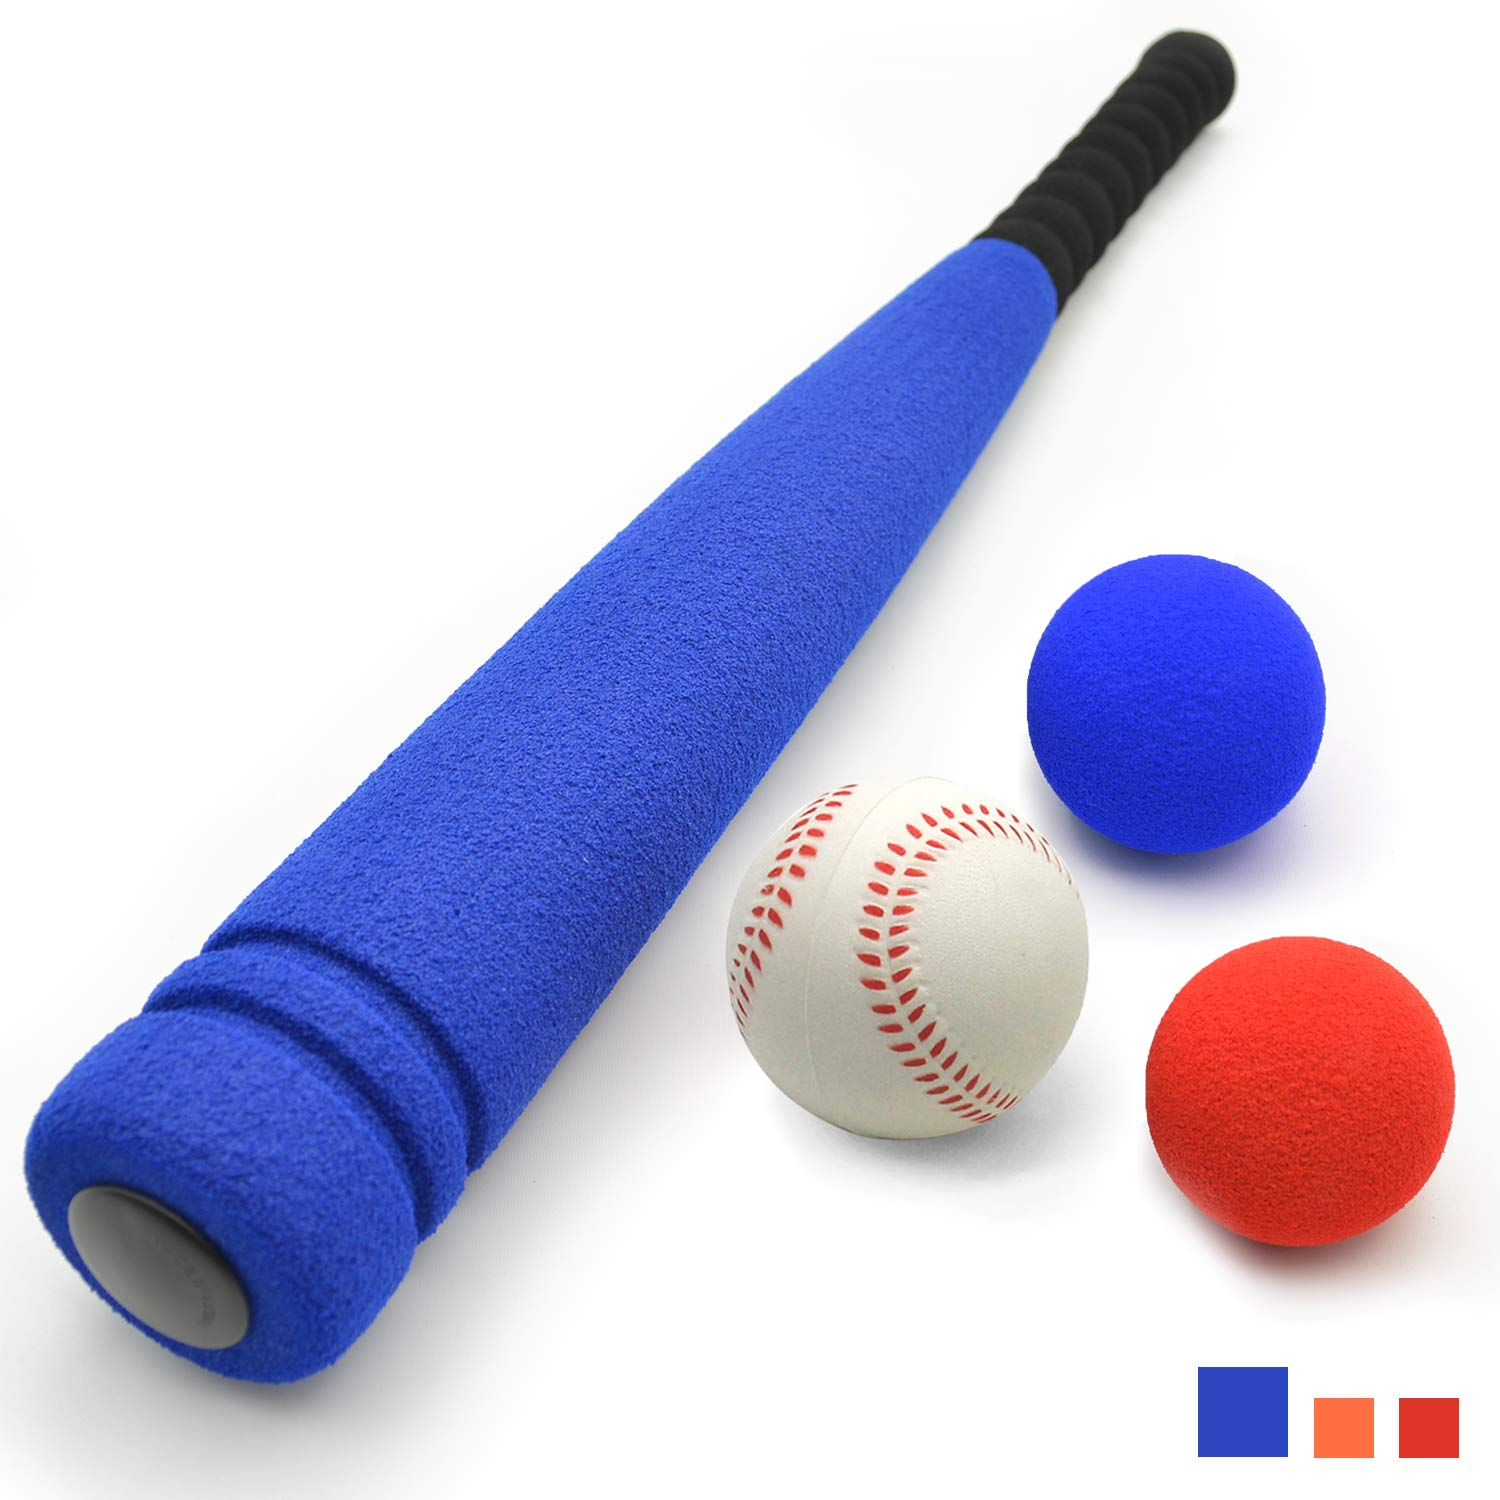 CeleMoon [3 Balls Included] Super Safe Kids Foam Baseball Bat Toys with 3 Balls for Children Age Over 3 yrs Old, Portable Carrying Bag Included, Blue